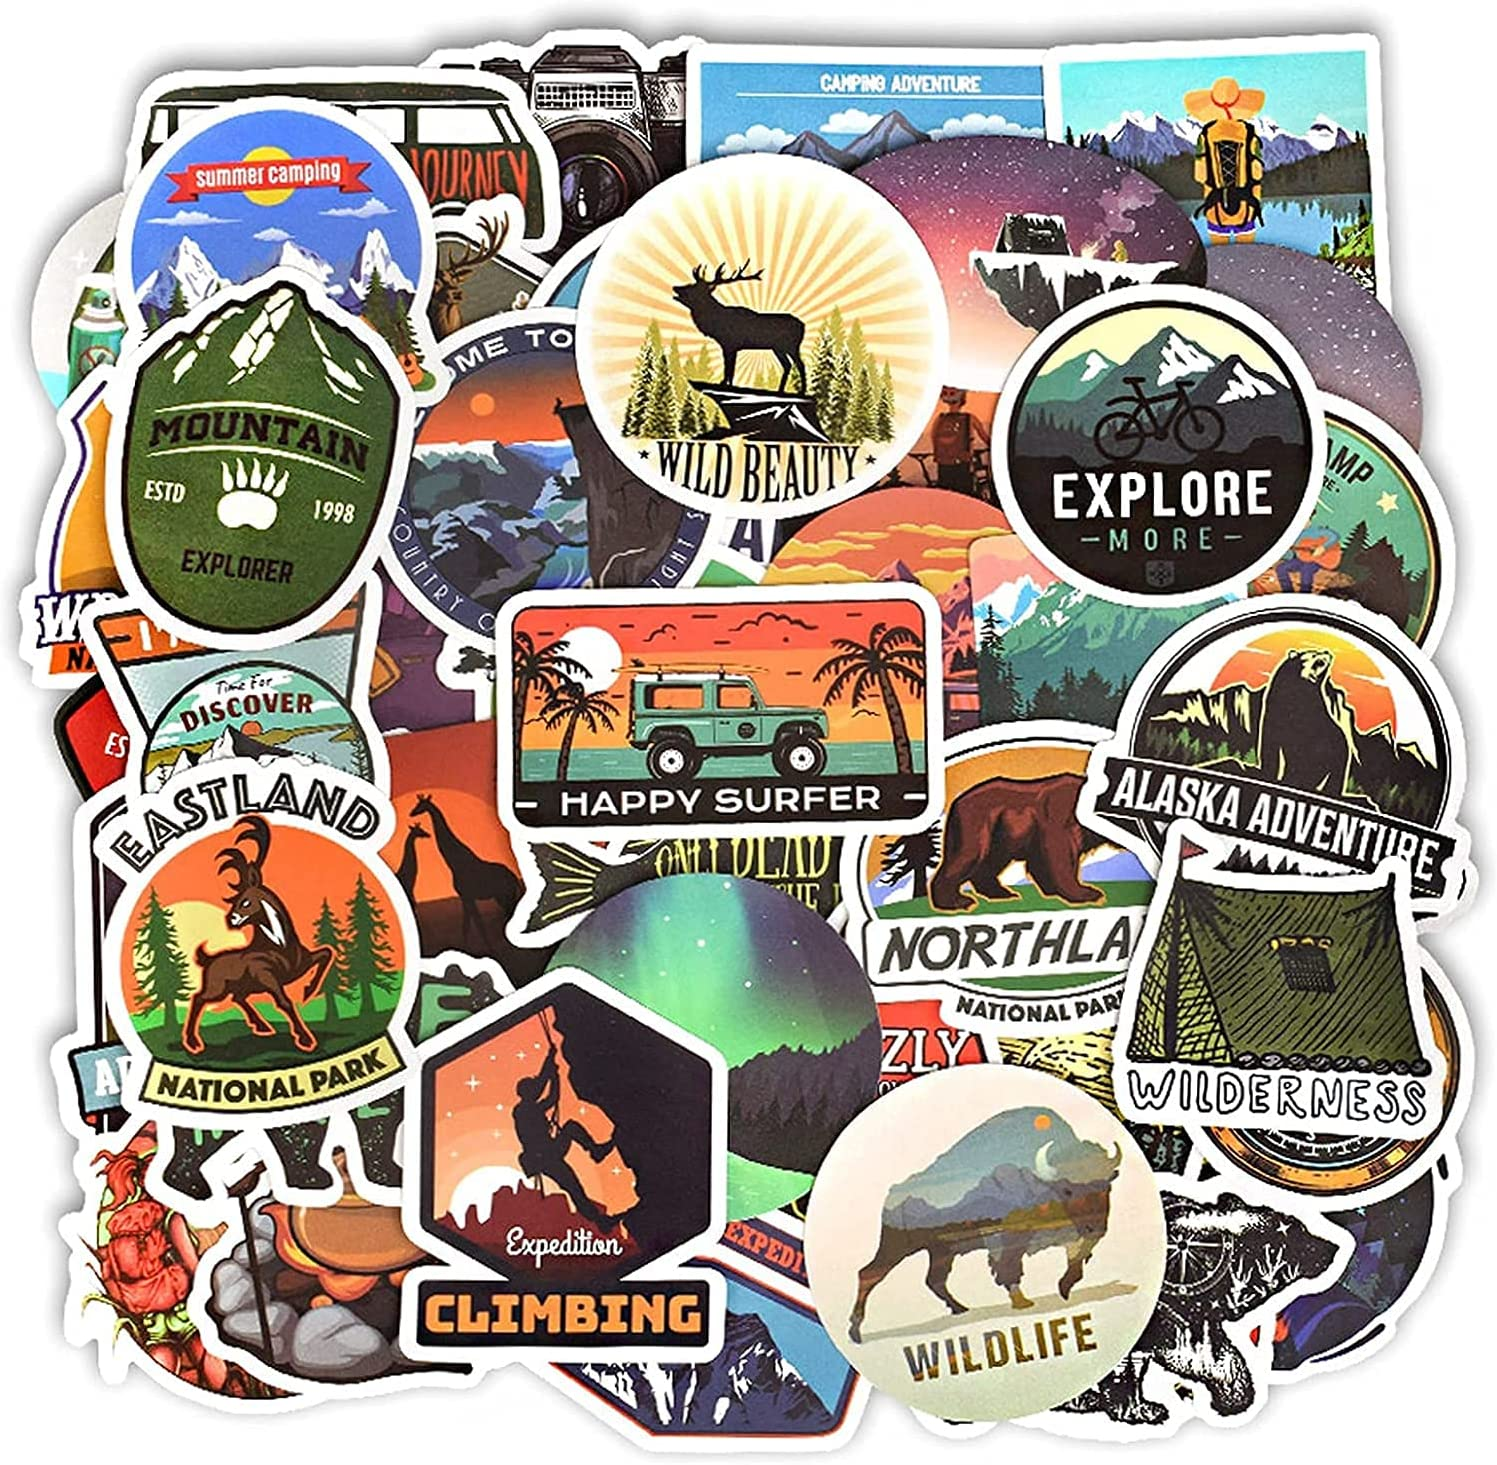 10 Pcs Waterproof Stickers for DIY Suitcase Laptop Bicycle Waterbottles Car Skateboard,Camping Landscape Stickers Outdoor Adventure Climbing Travel Decals 10 Pcs